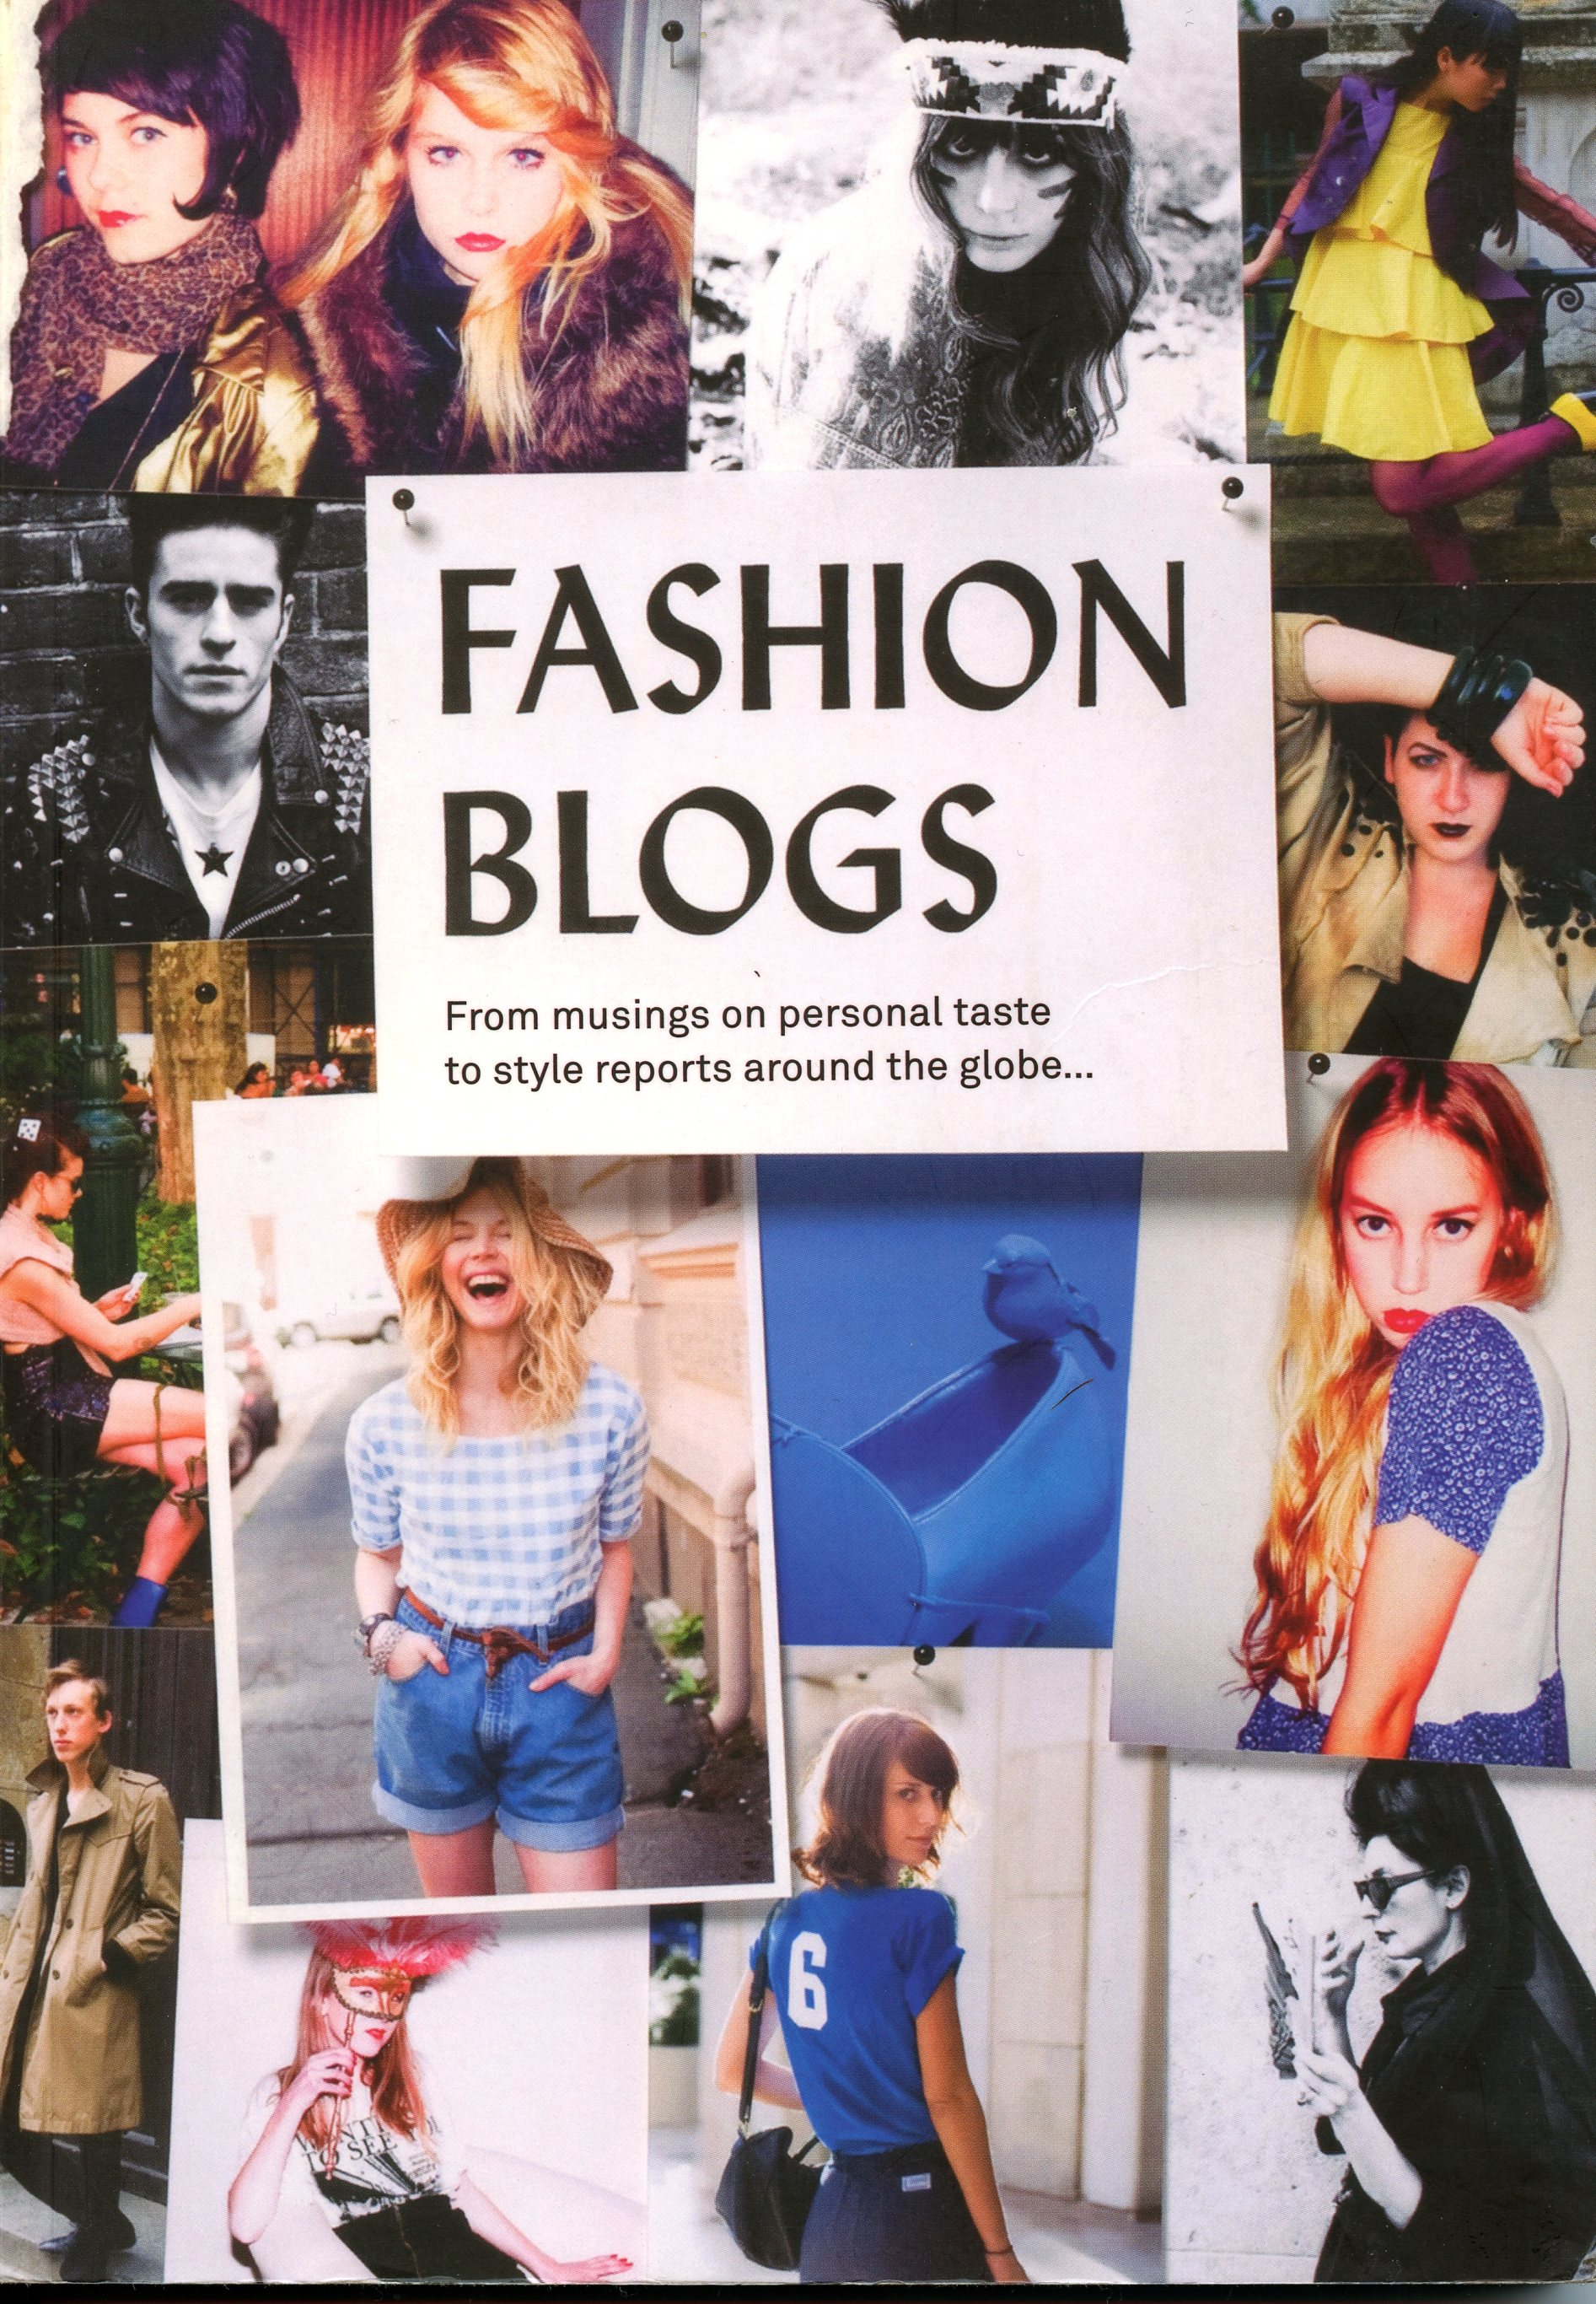 Blog: Bookshelf: Fashion Blogs